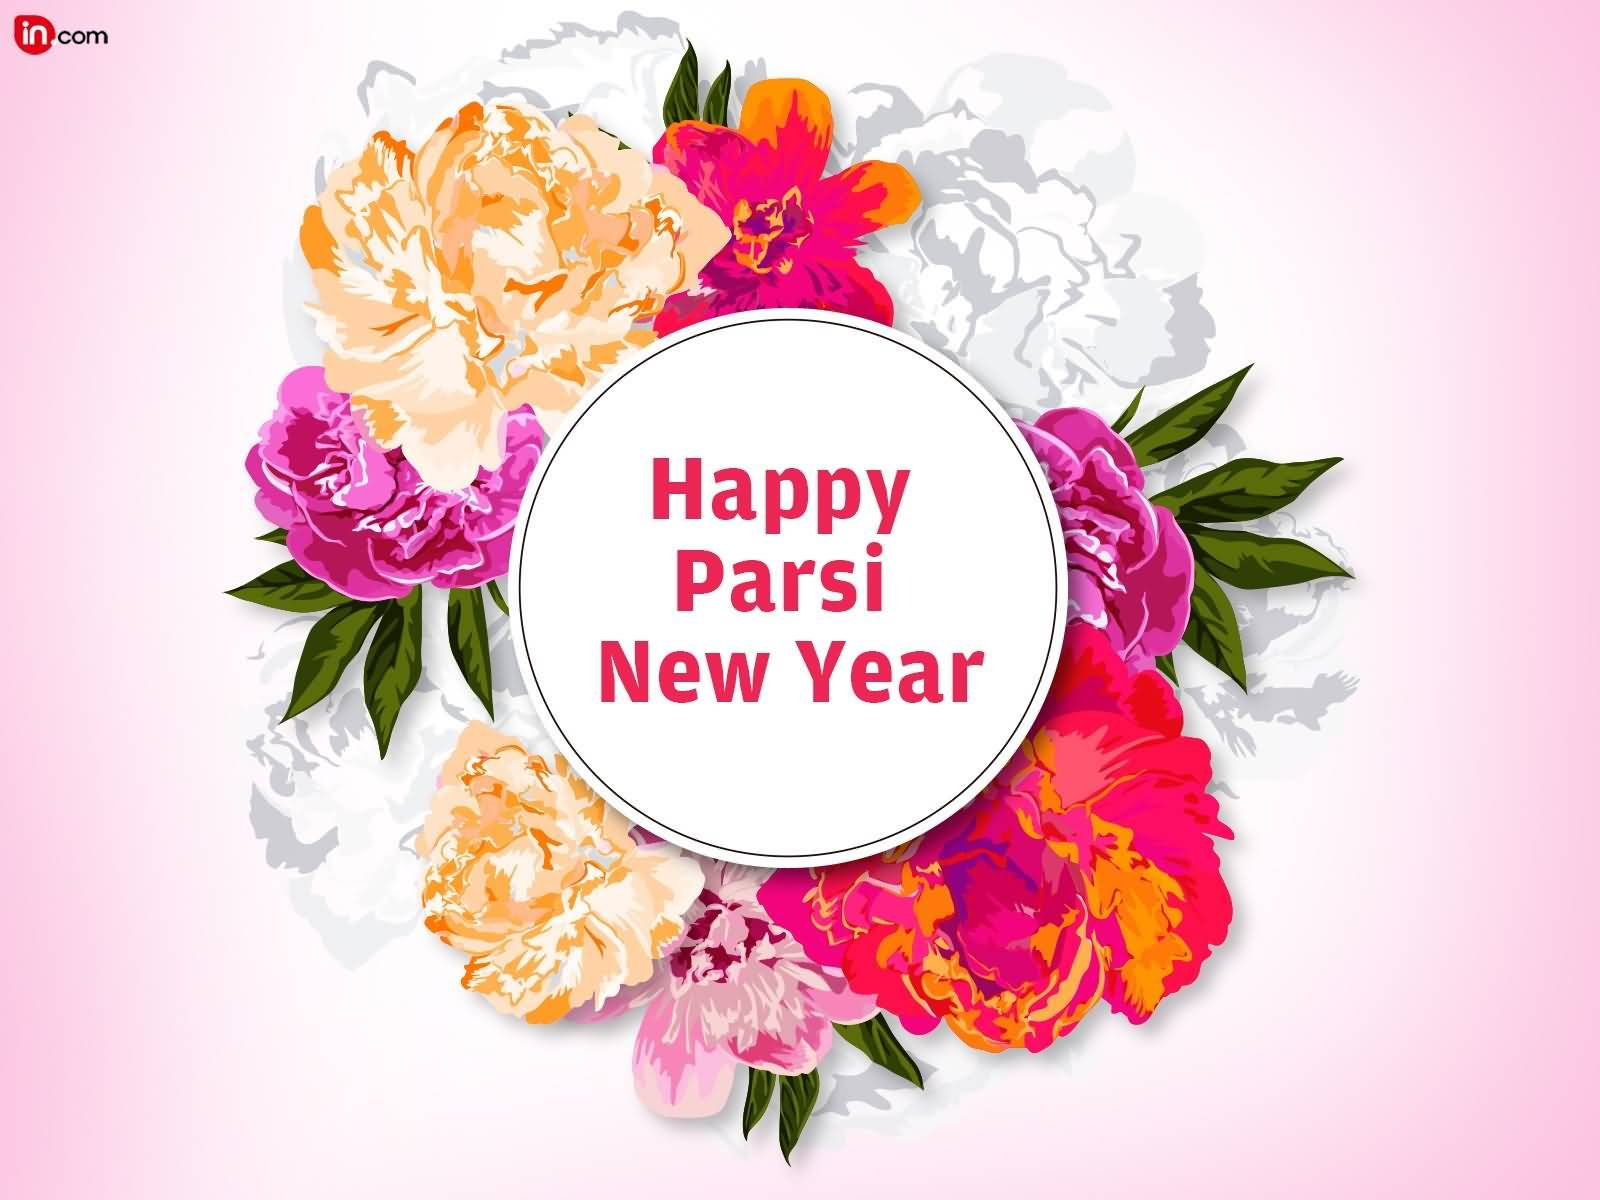 Parsi new year clipart vector stock 33 Beautiful Parsi New Year Greeting Pictures And Images vector stock